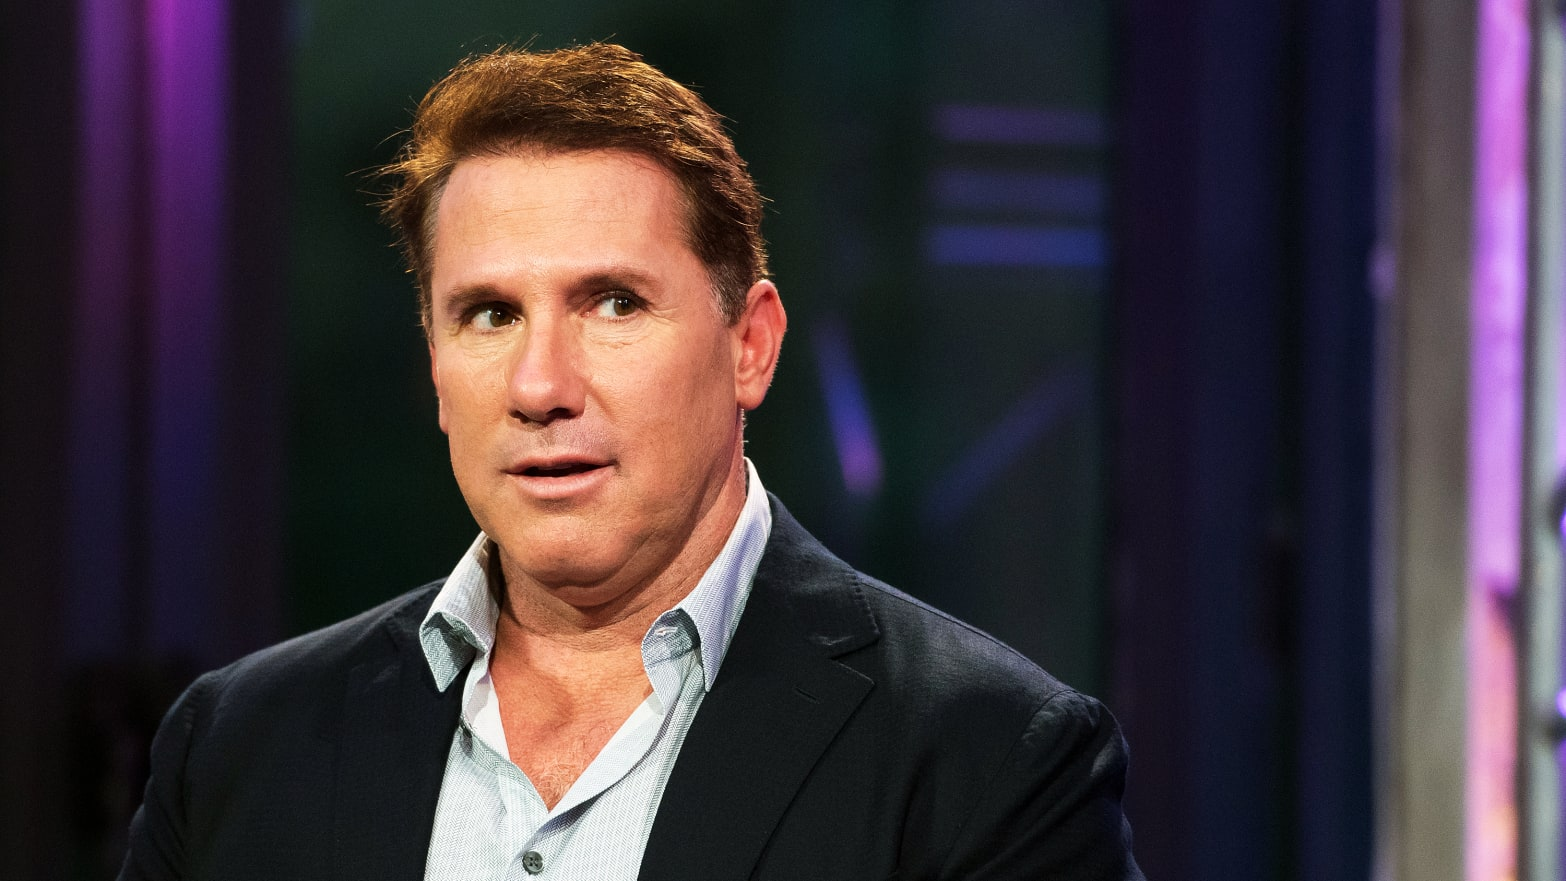 Nicholas Sparks' 'The Notebook' Gets Staged Reading Amid Controversy